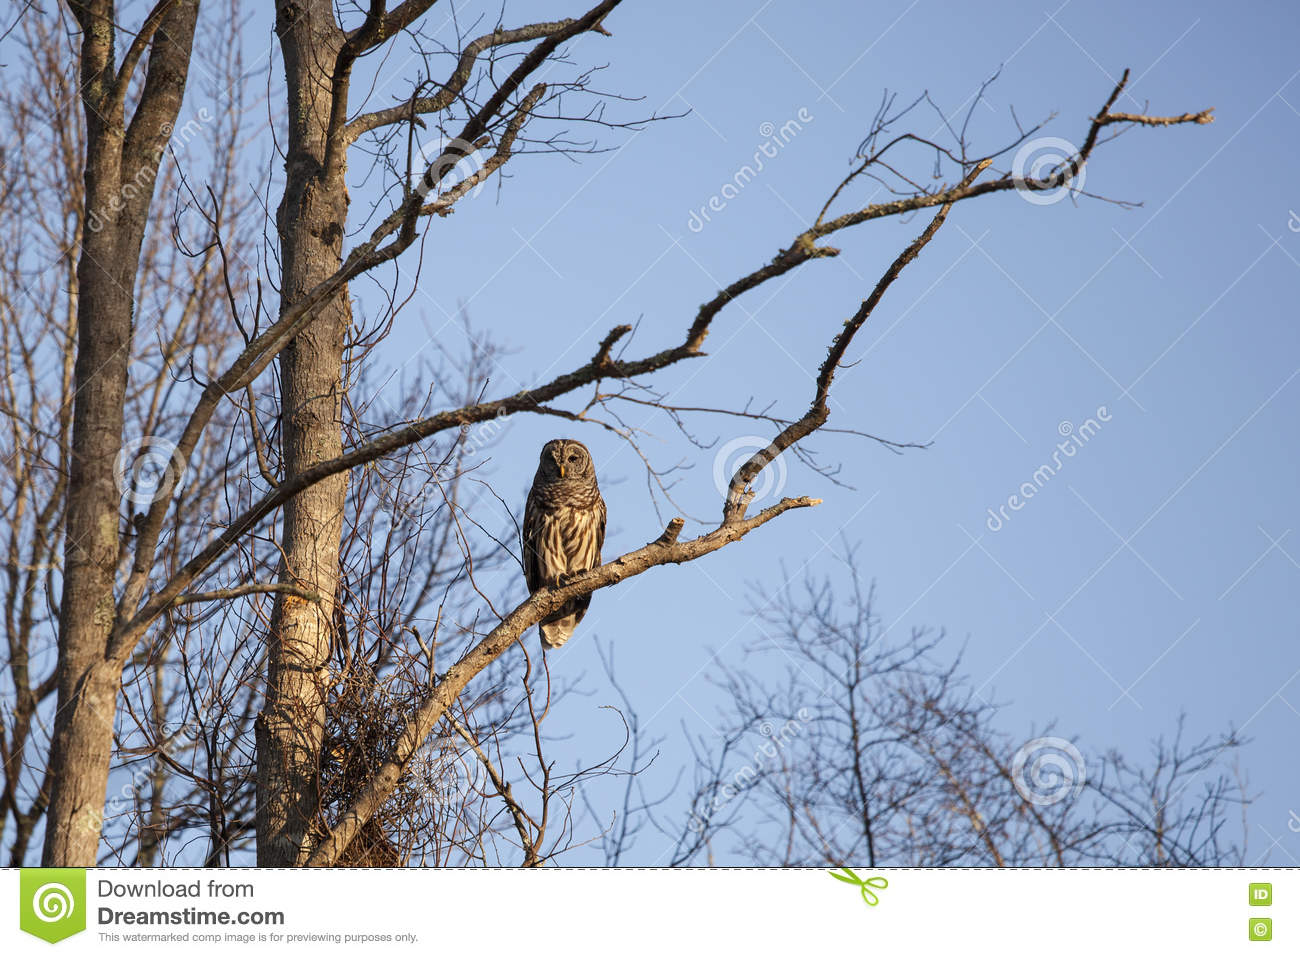 Barred Owl In Natural Habitat Stock Photo - Image of morning